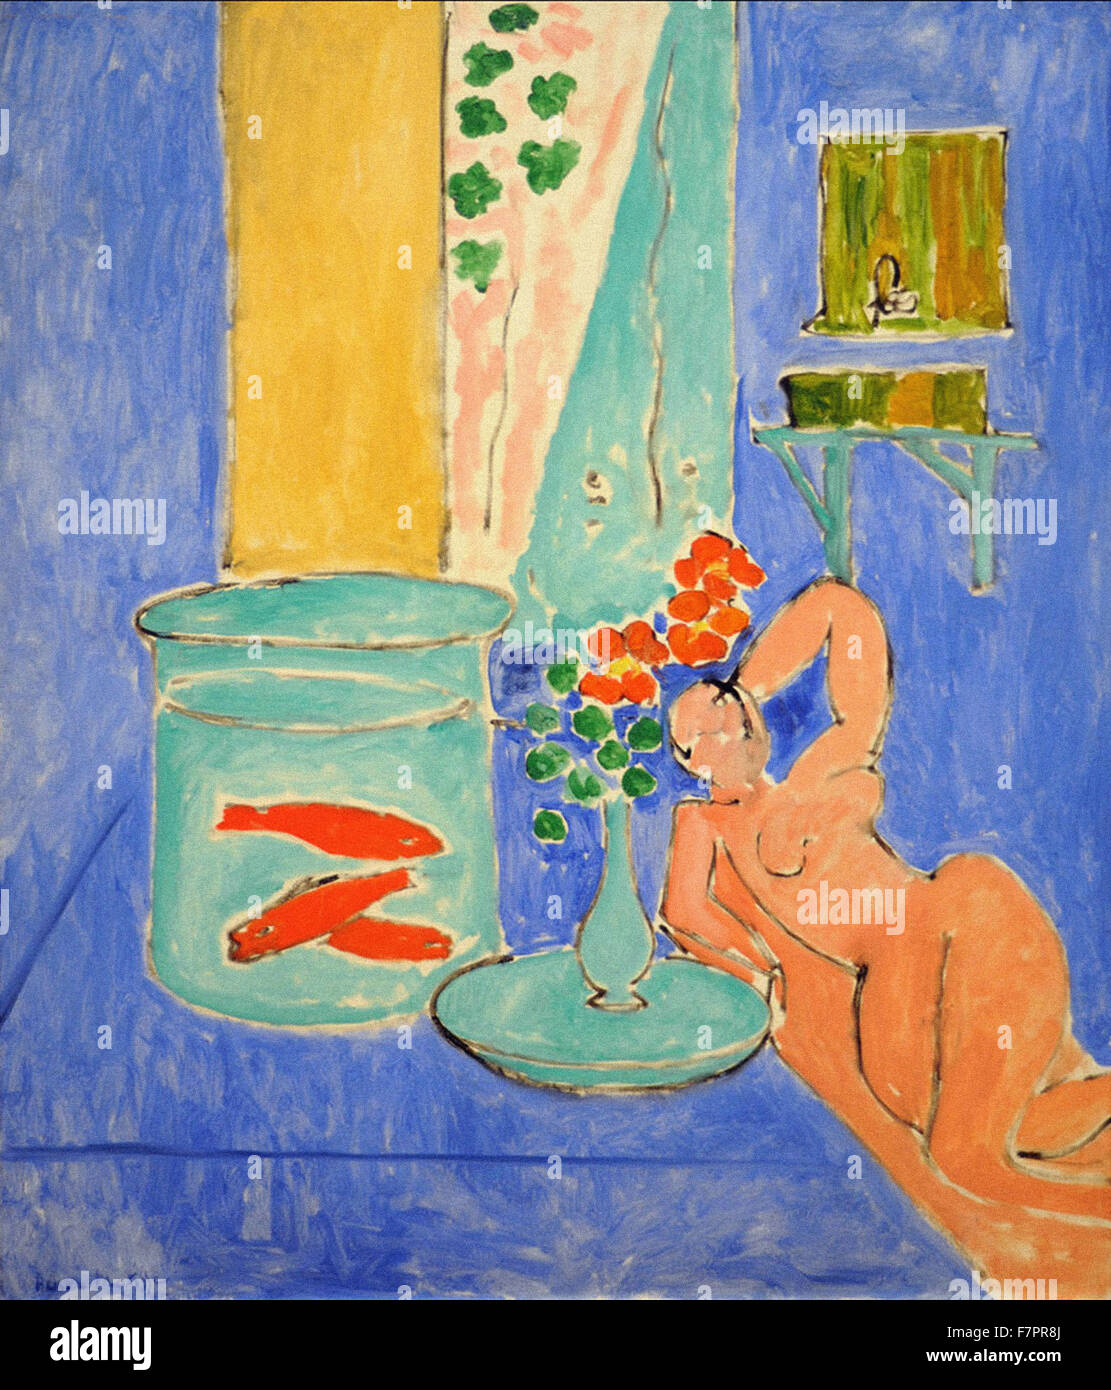 Henri Matisse - Goldfish and Sculpture - Stock Image